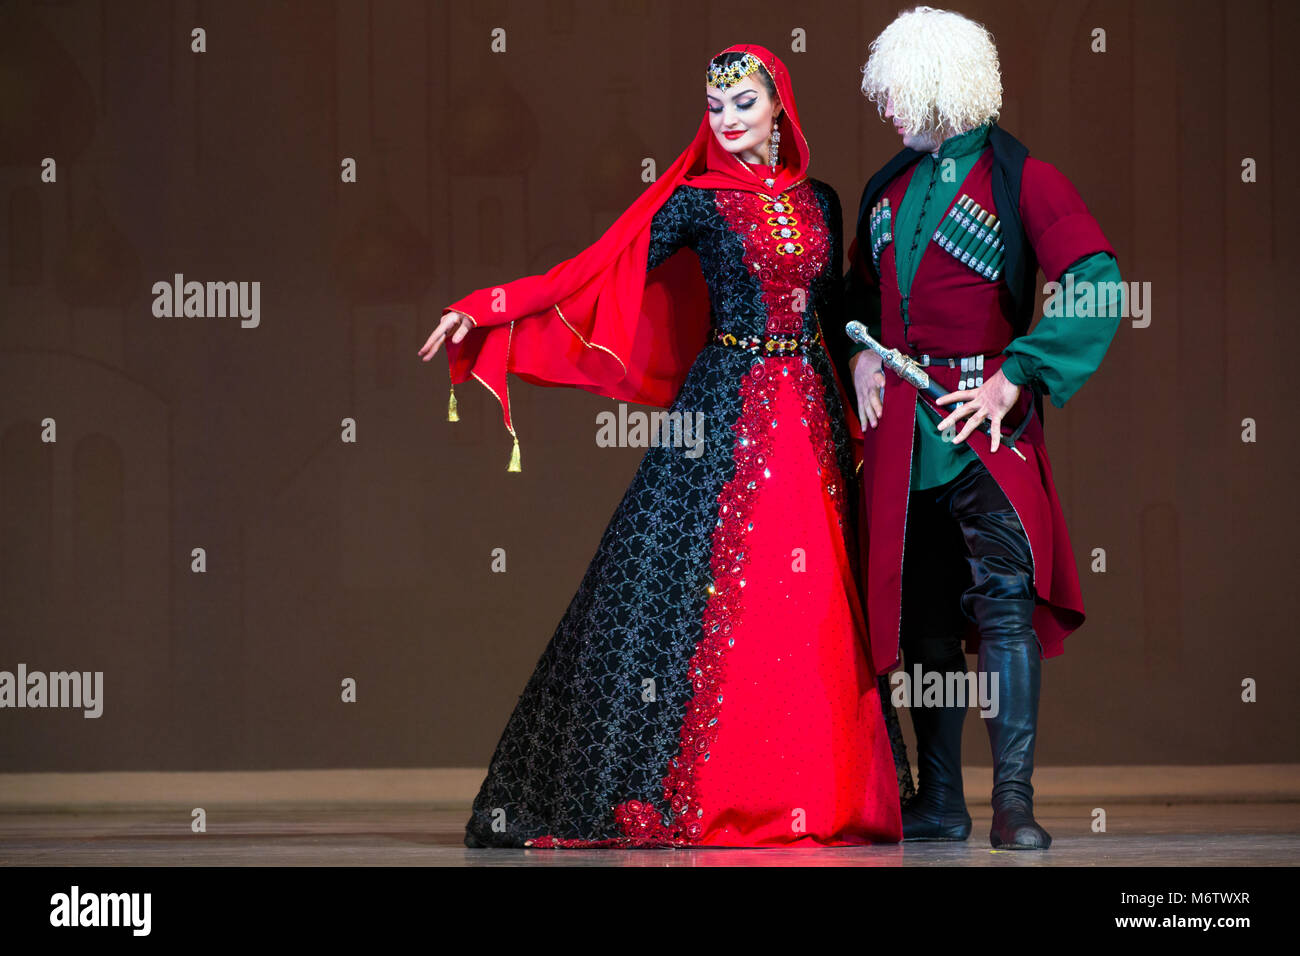 A traditional Caucasian dance performed by a couple on stage in Moscow, Russia - Stock Image